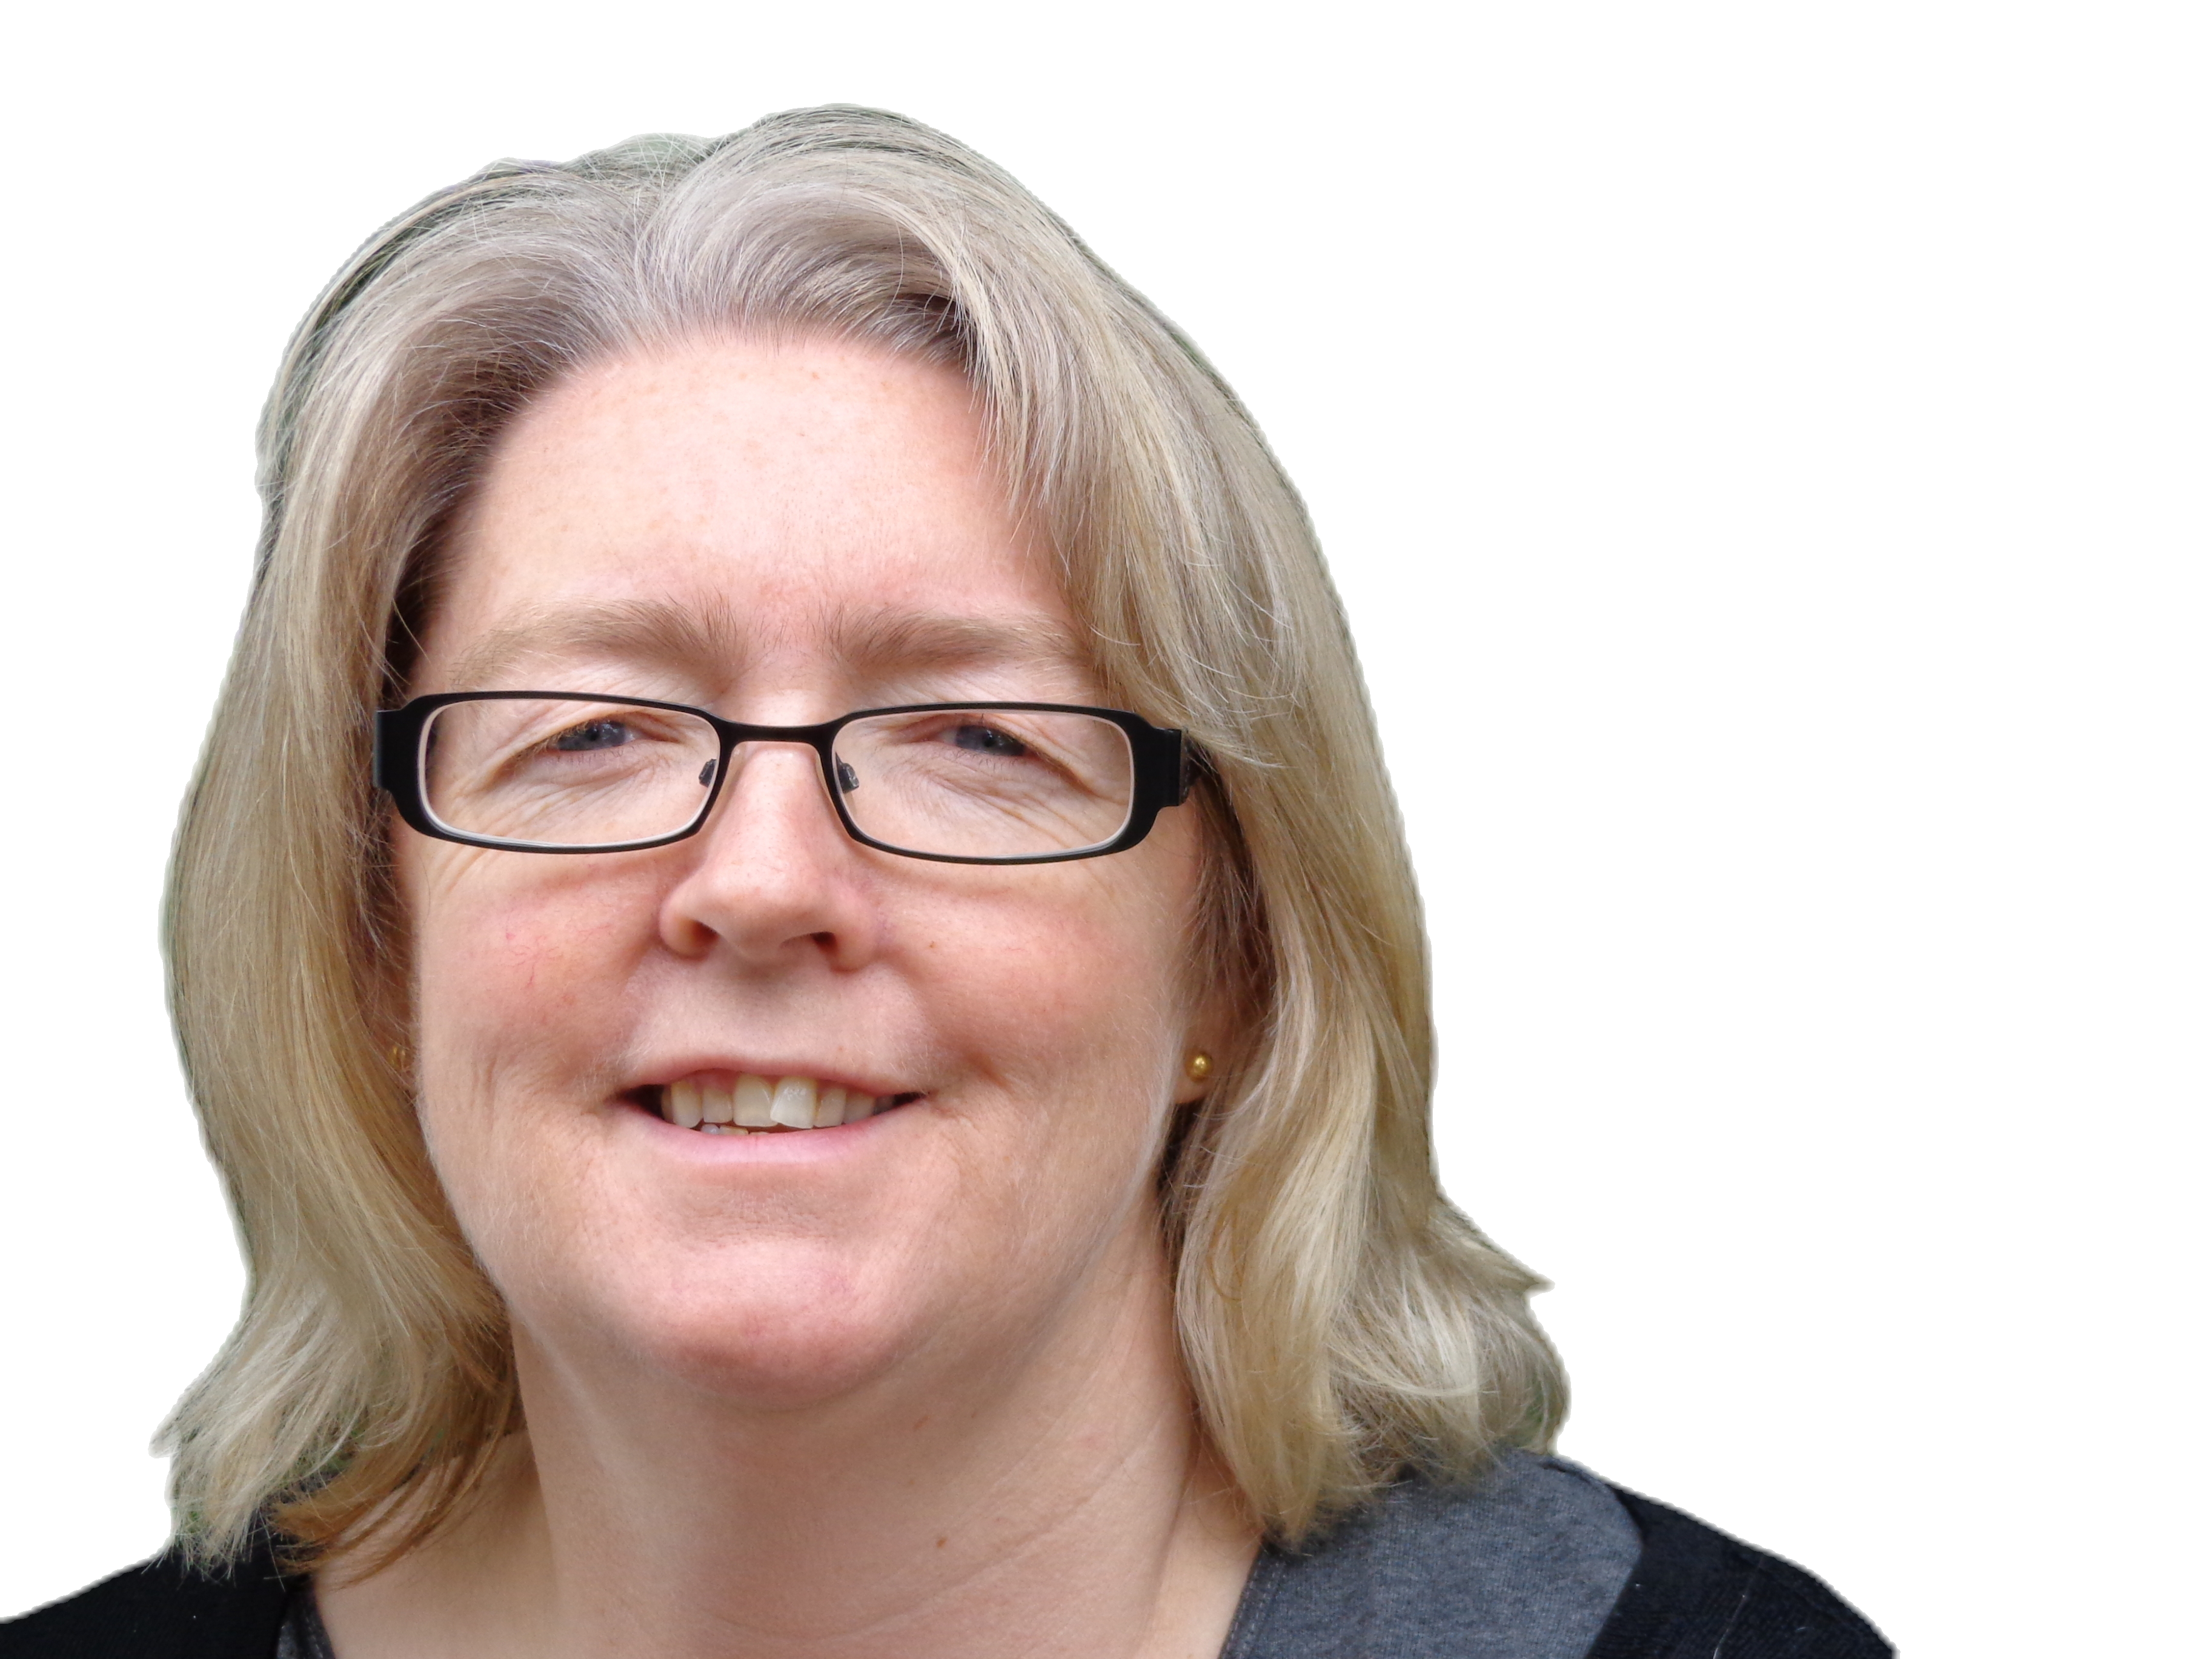 Wendy Greaves, Manager at Winchelsea Community House